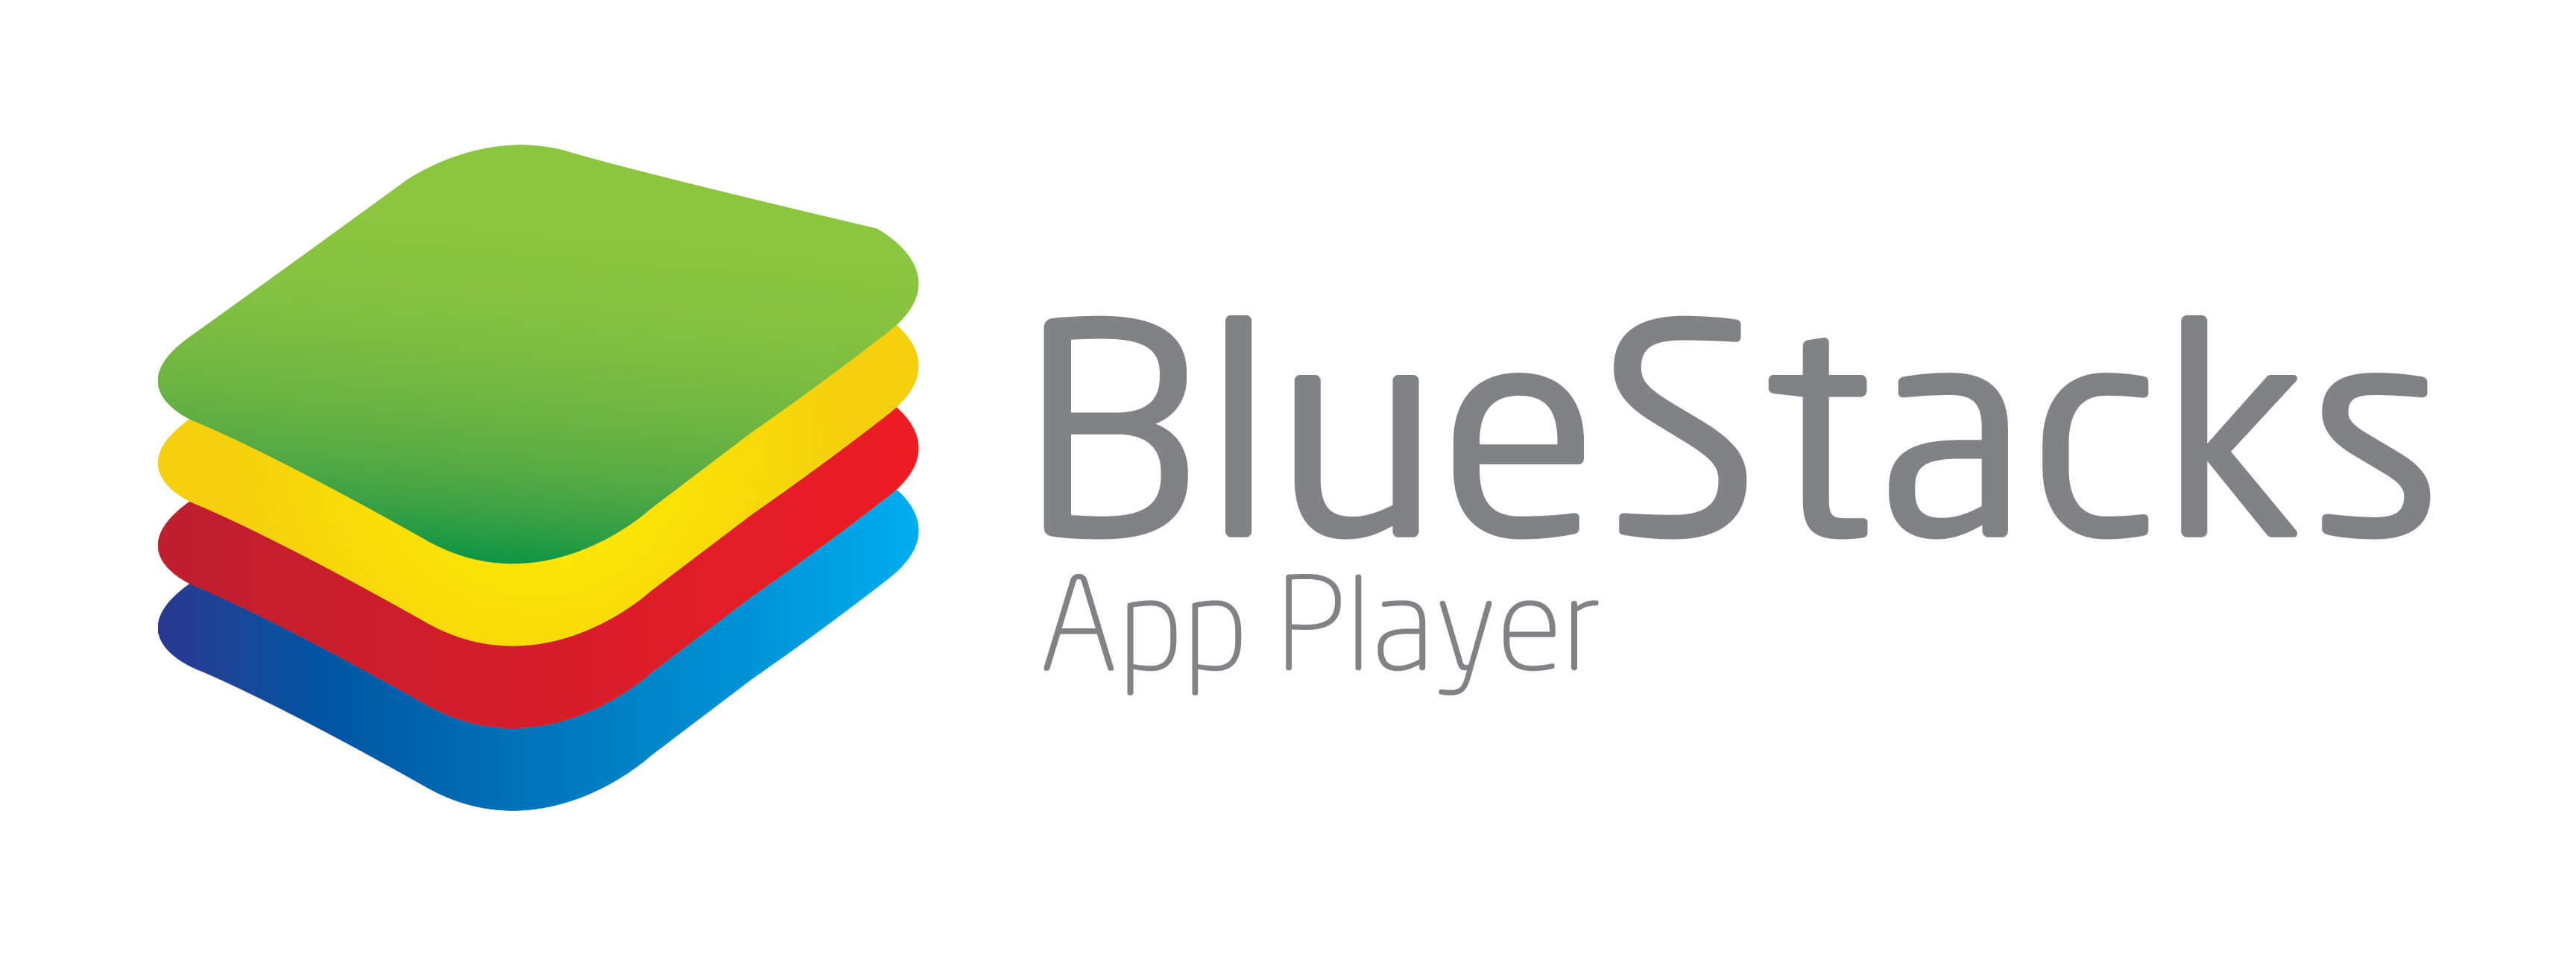 Download-Google-Play Store-For-PC-Bluestacks